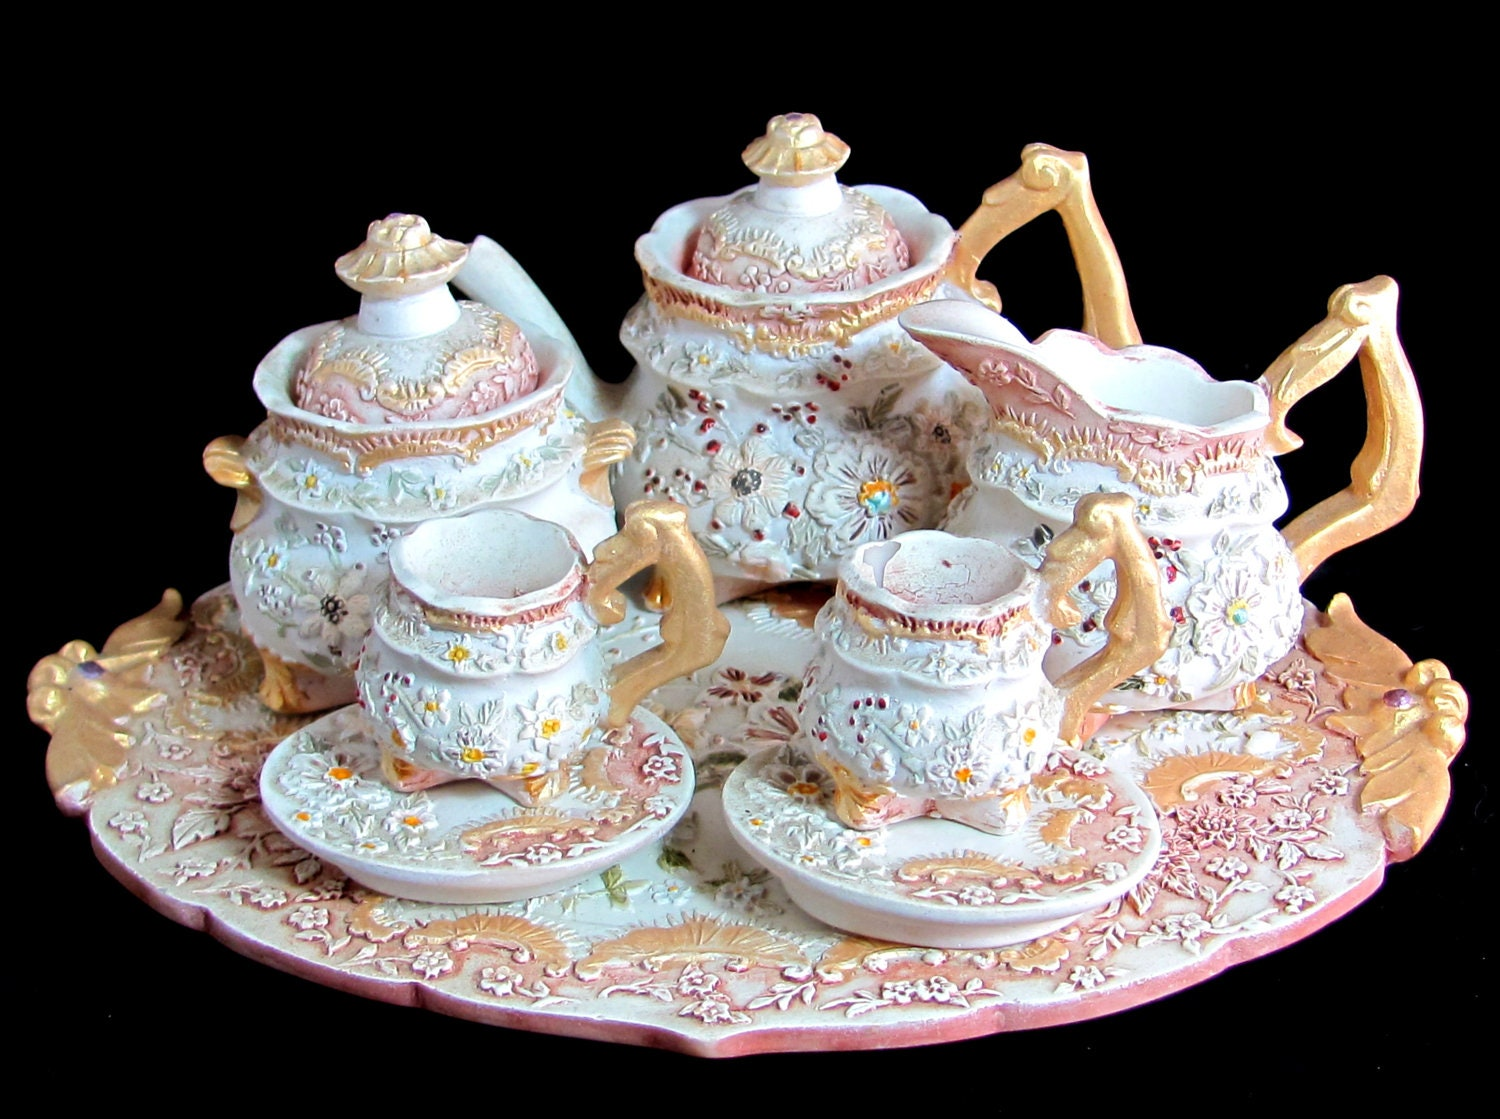 Vintage Miniature Teaset Ornate Regency Style Doll S By